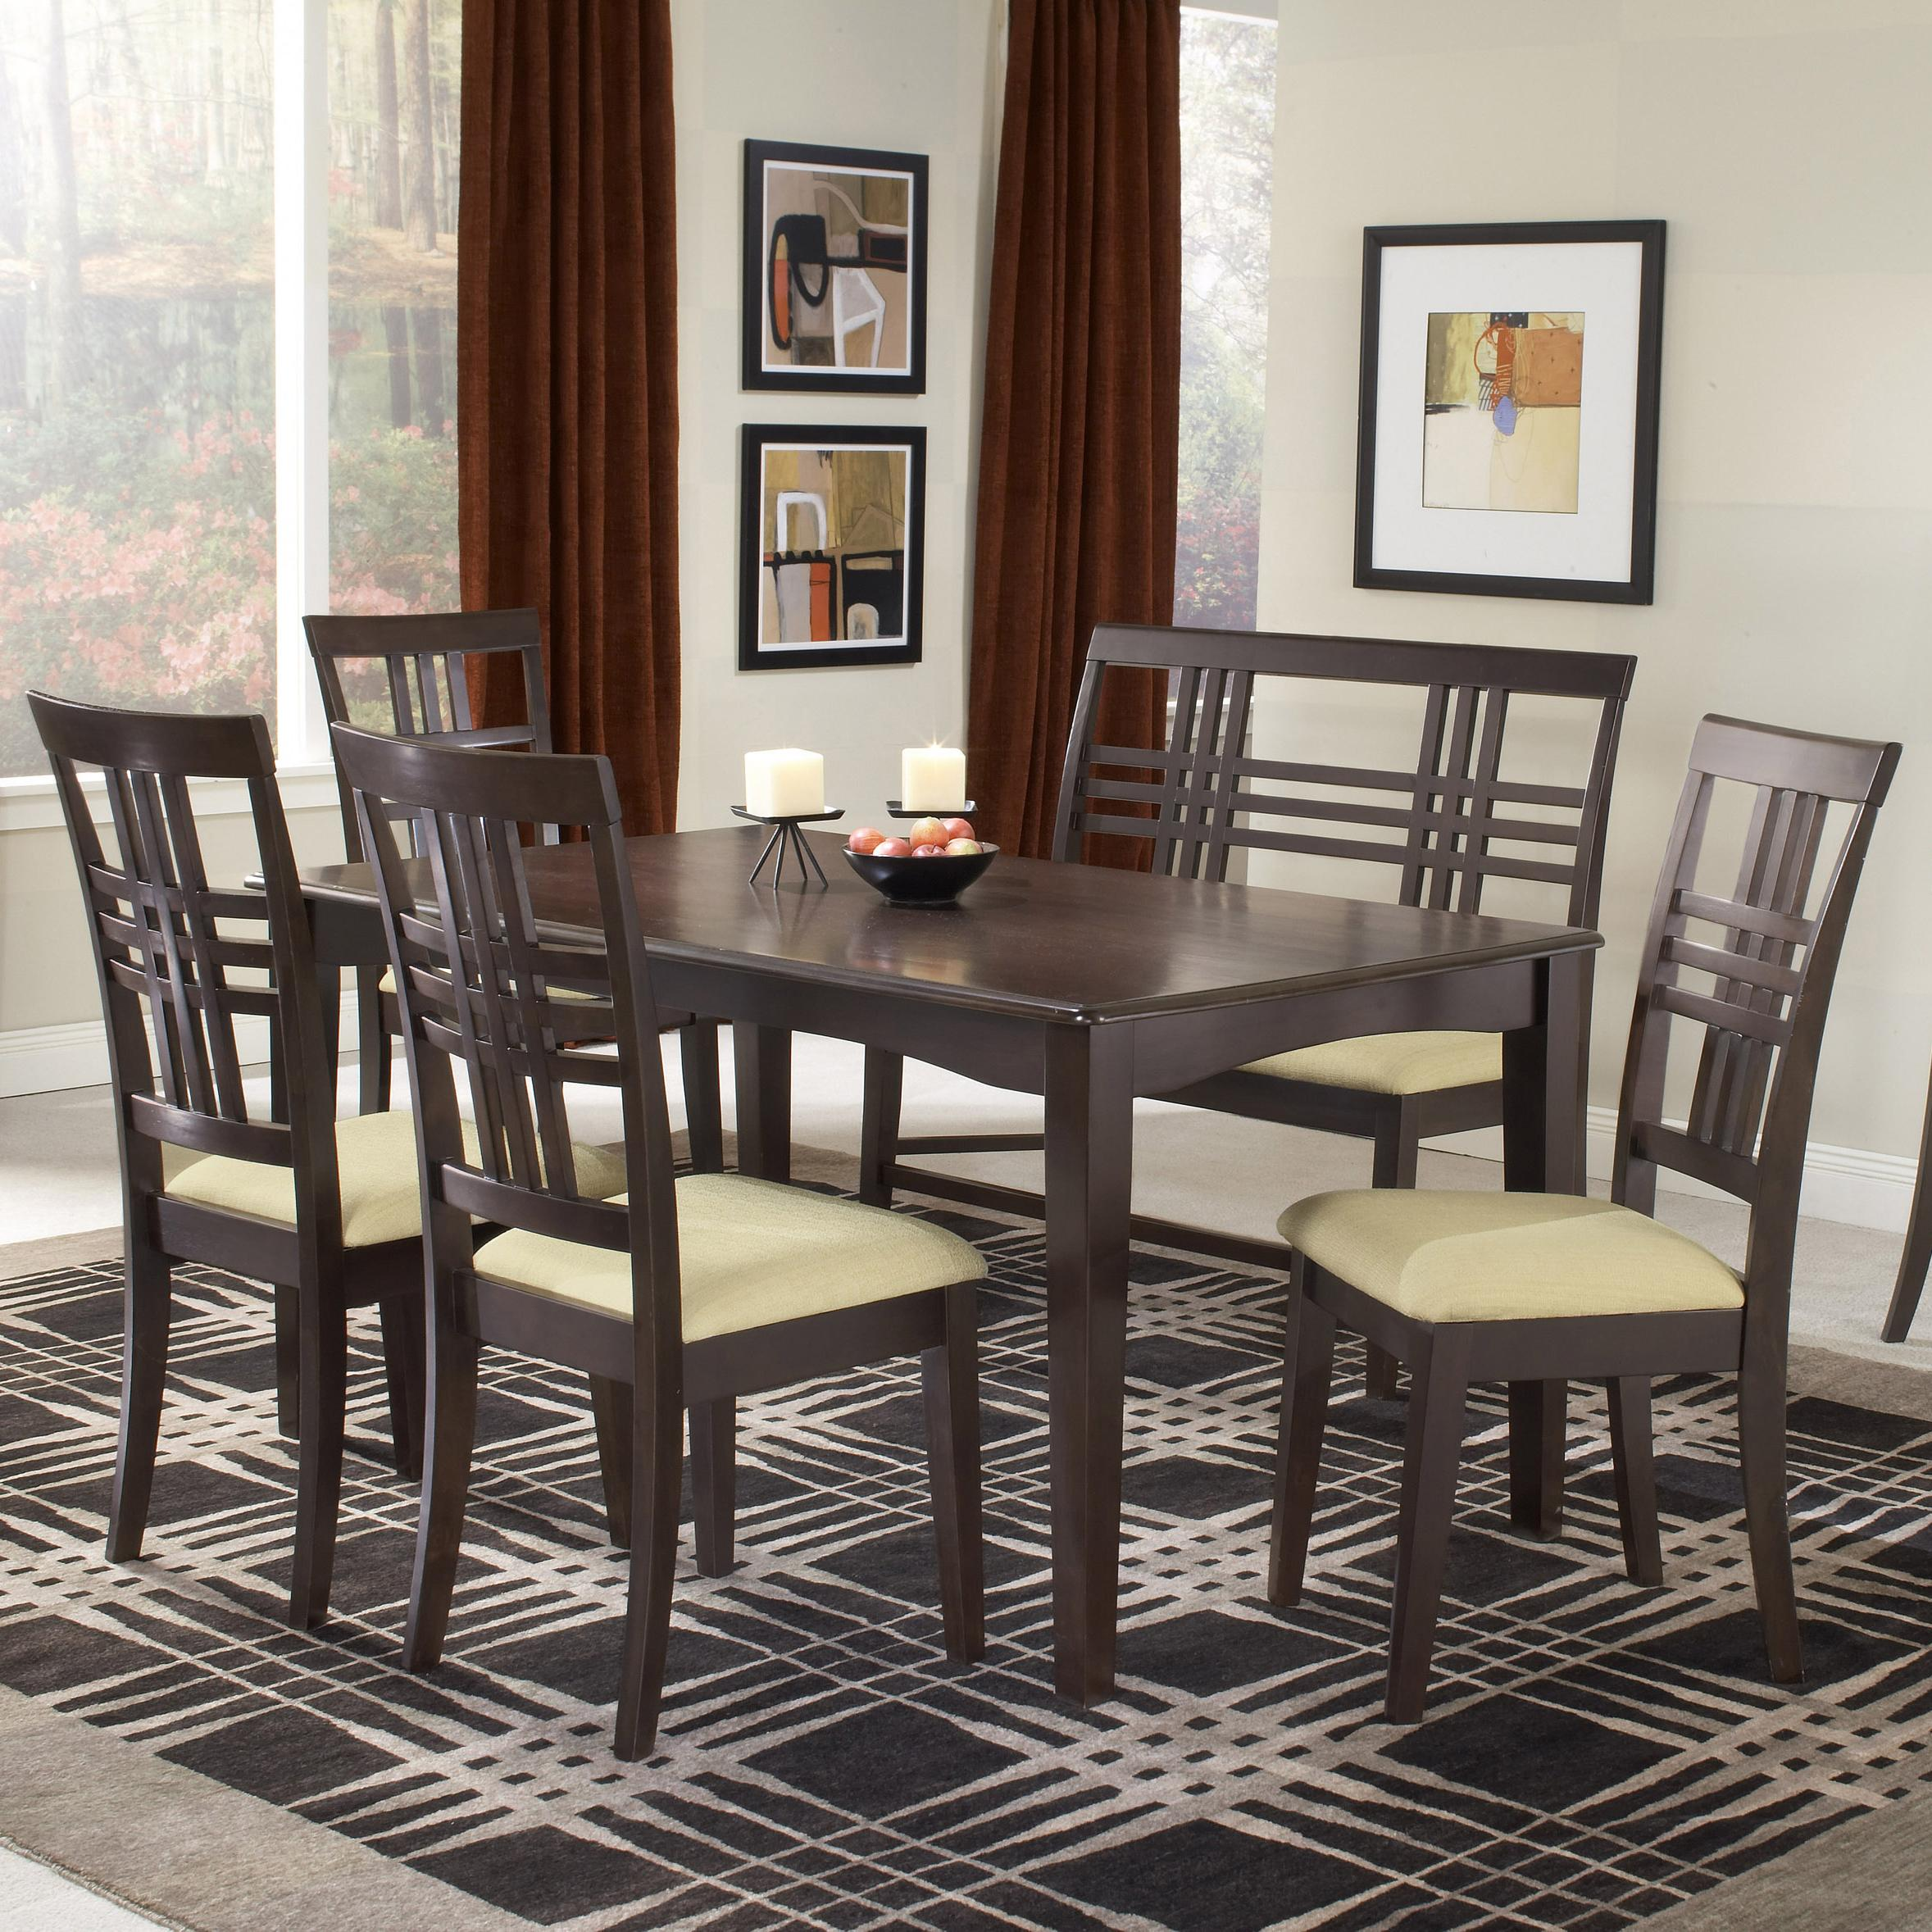 Hillsdale tiburon 36 x 60 fix top dining table johnny for Dining room table 60 x 36